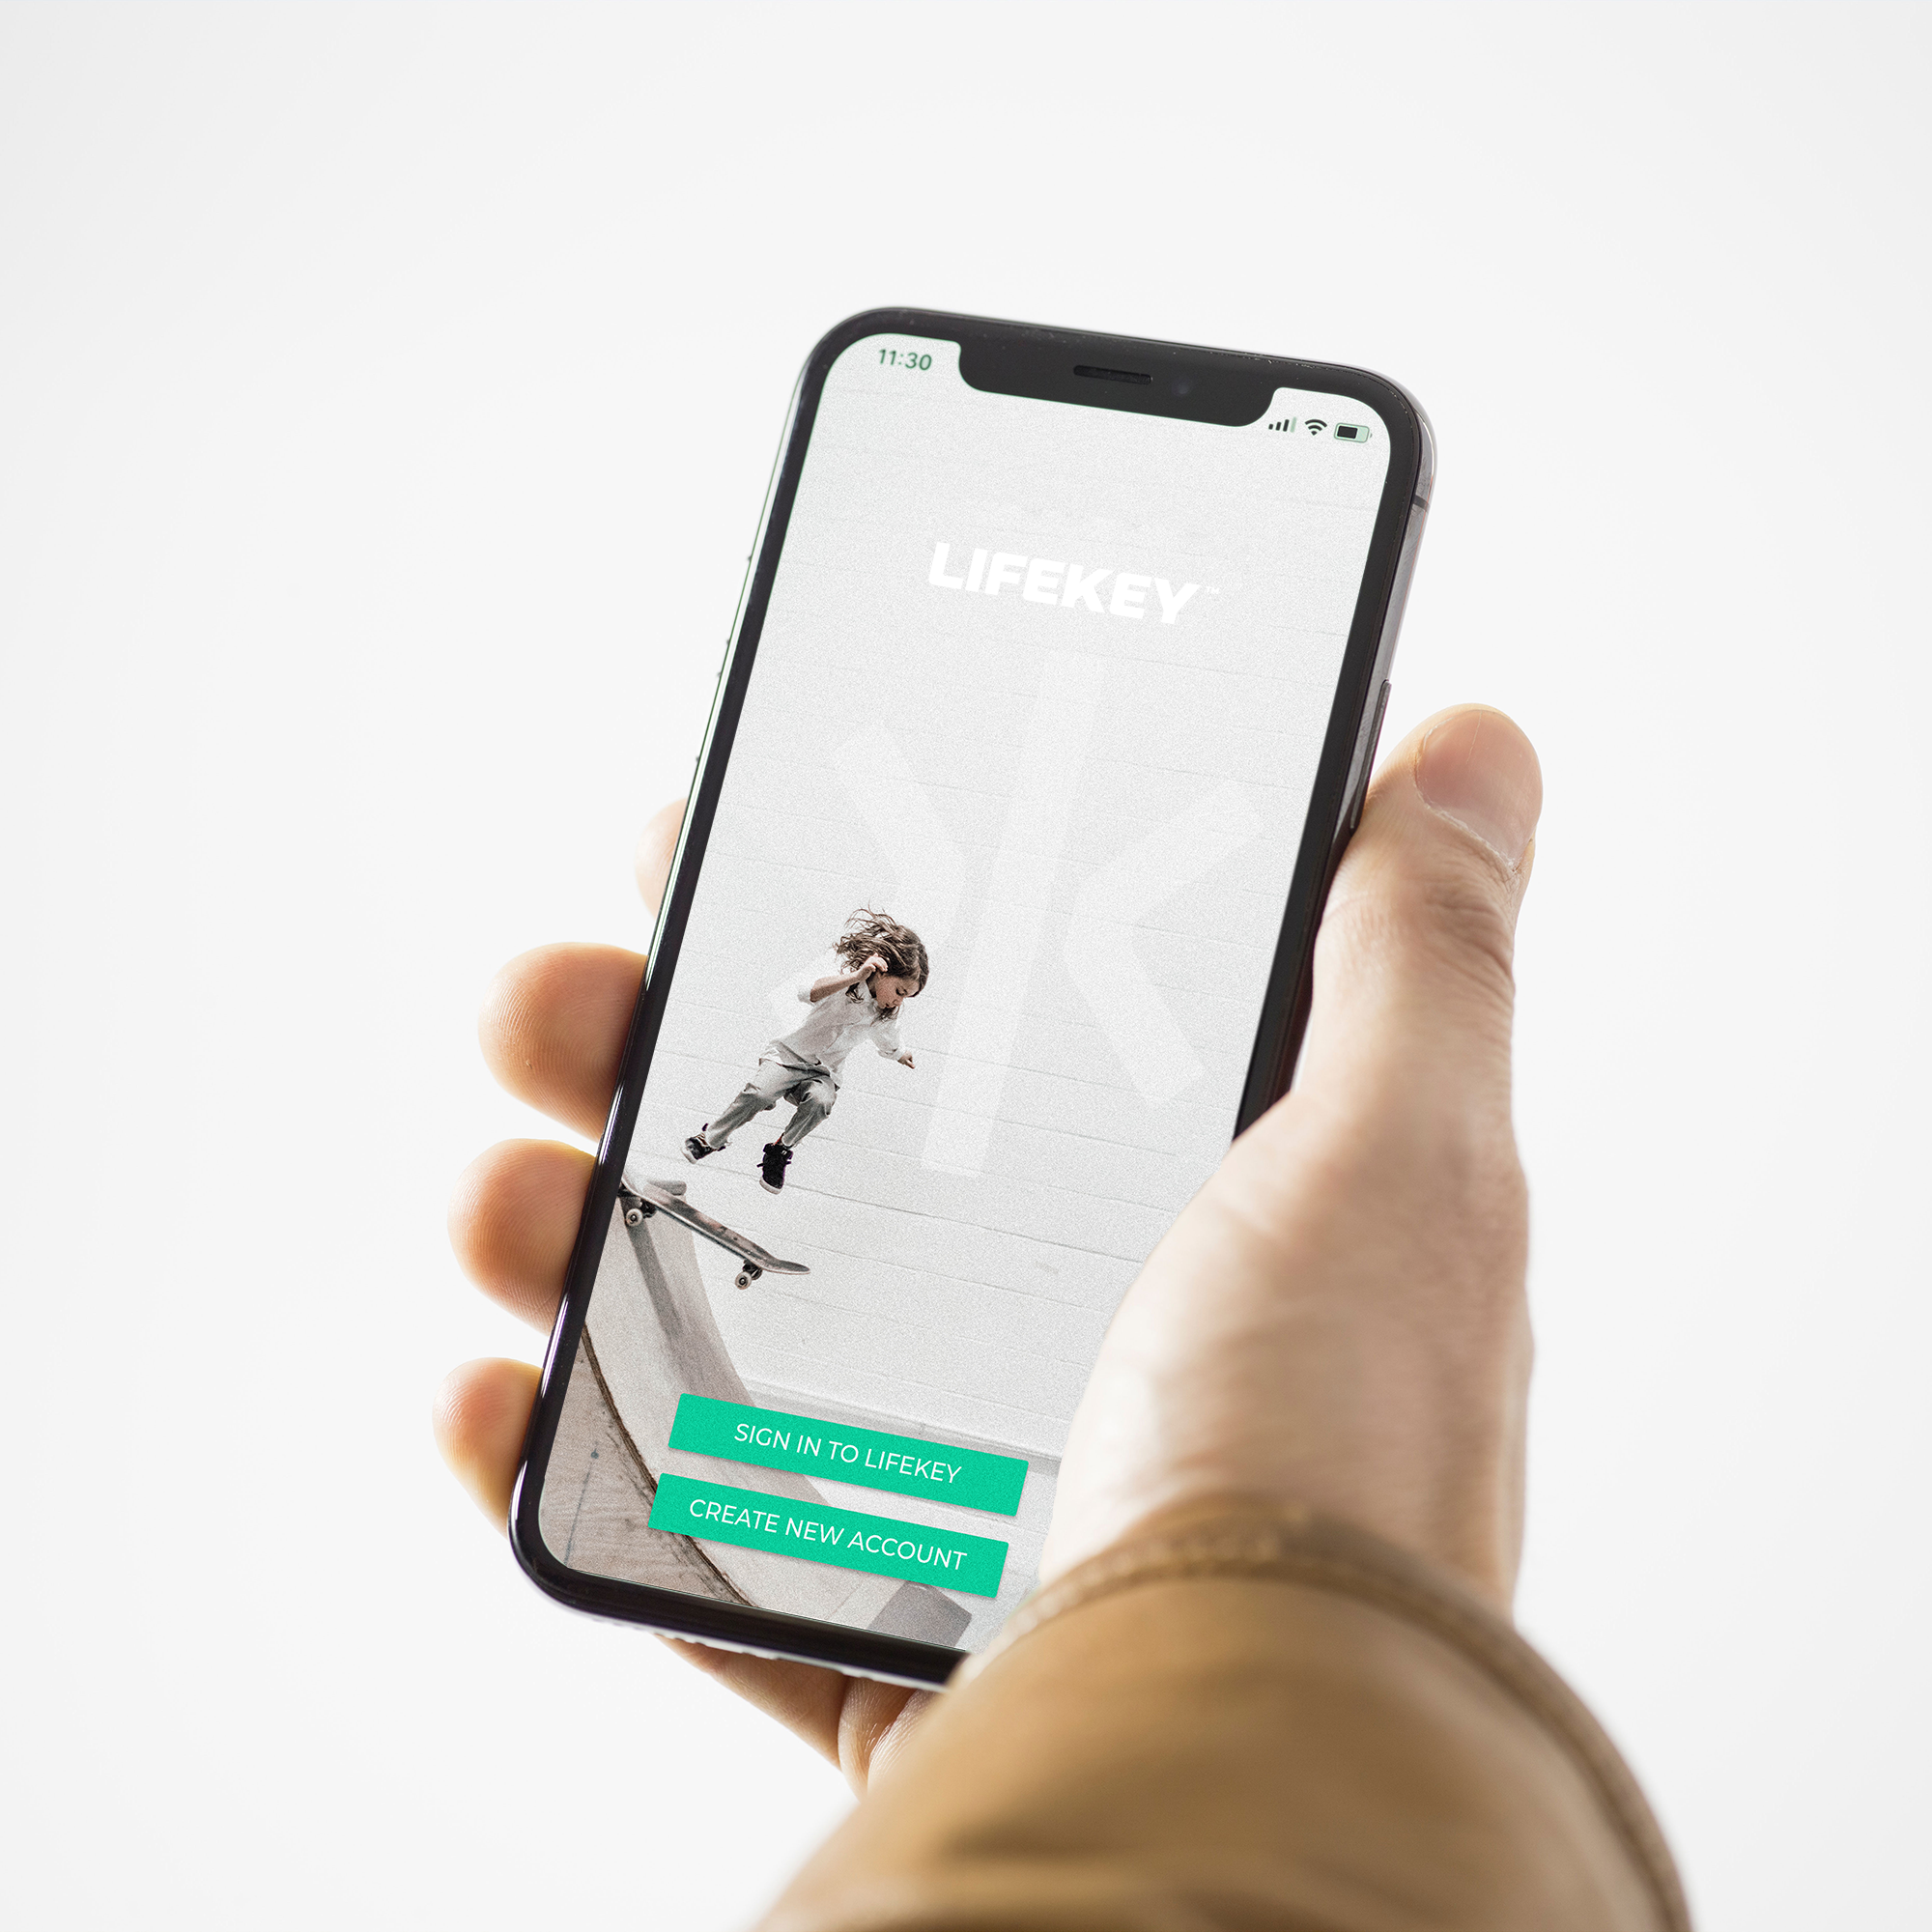 lifekey-app-in-use-small.png